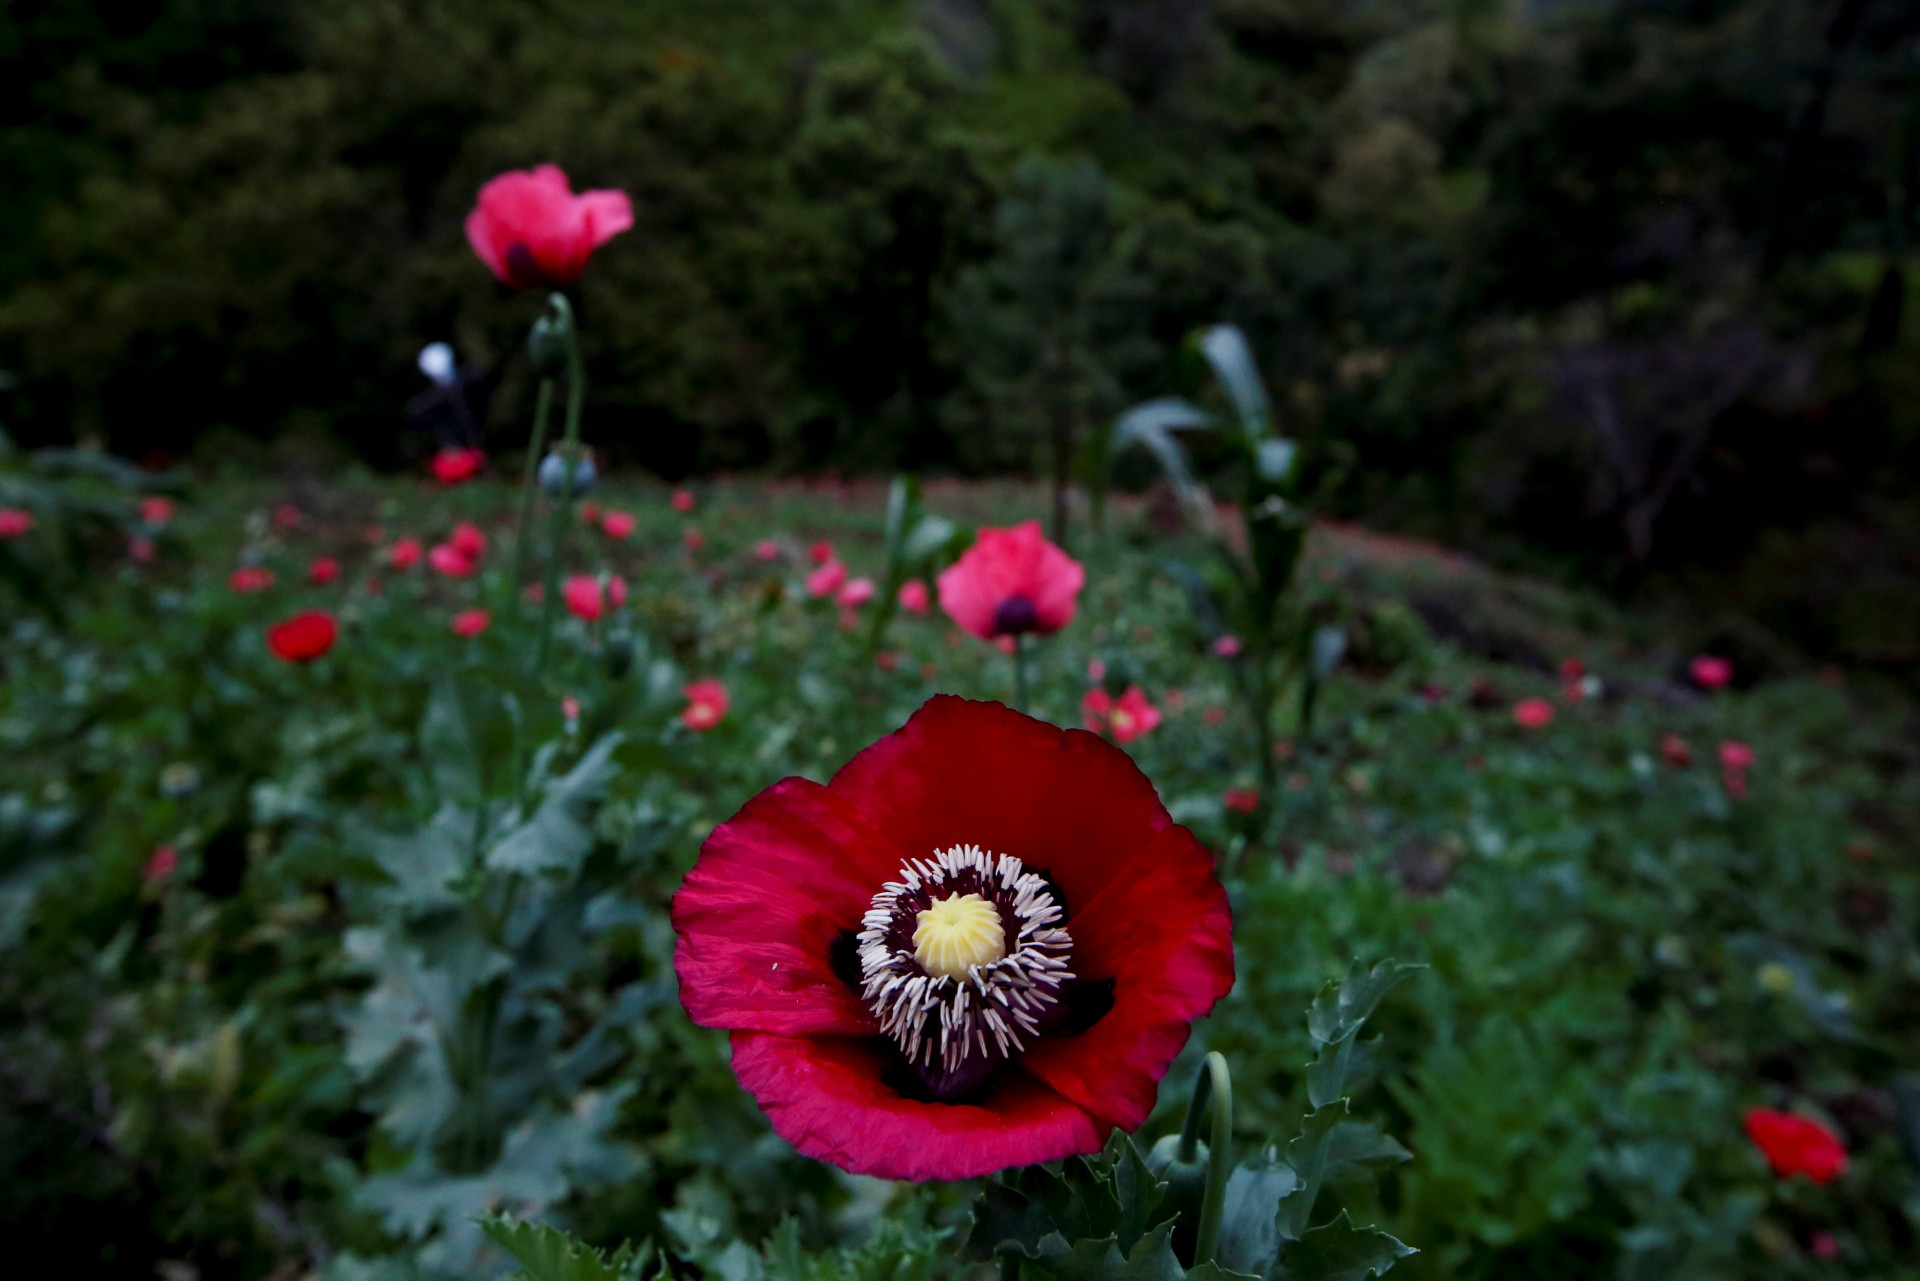 The flower of an opium poppy is seen in a field in Pueblo Viejo in the Sierra Madre del Sur, in the southern state of Guerrero, Mexico, August 25, 2018.